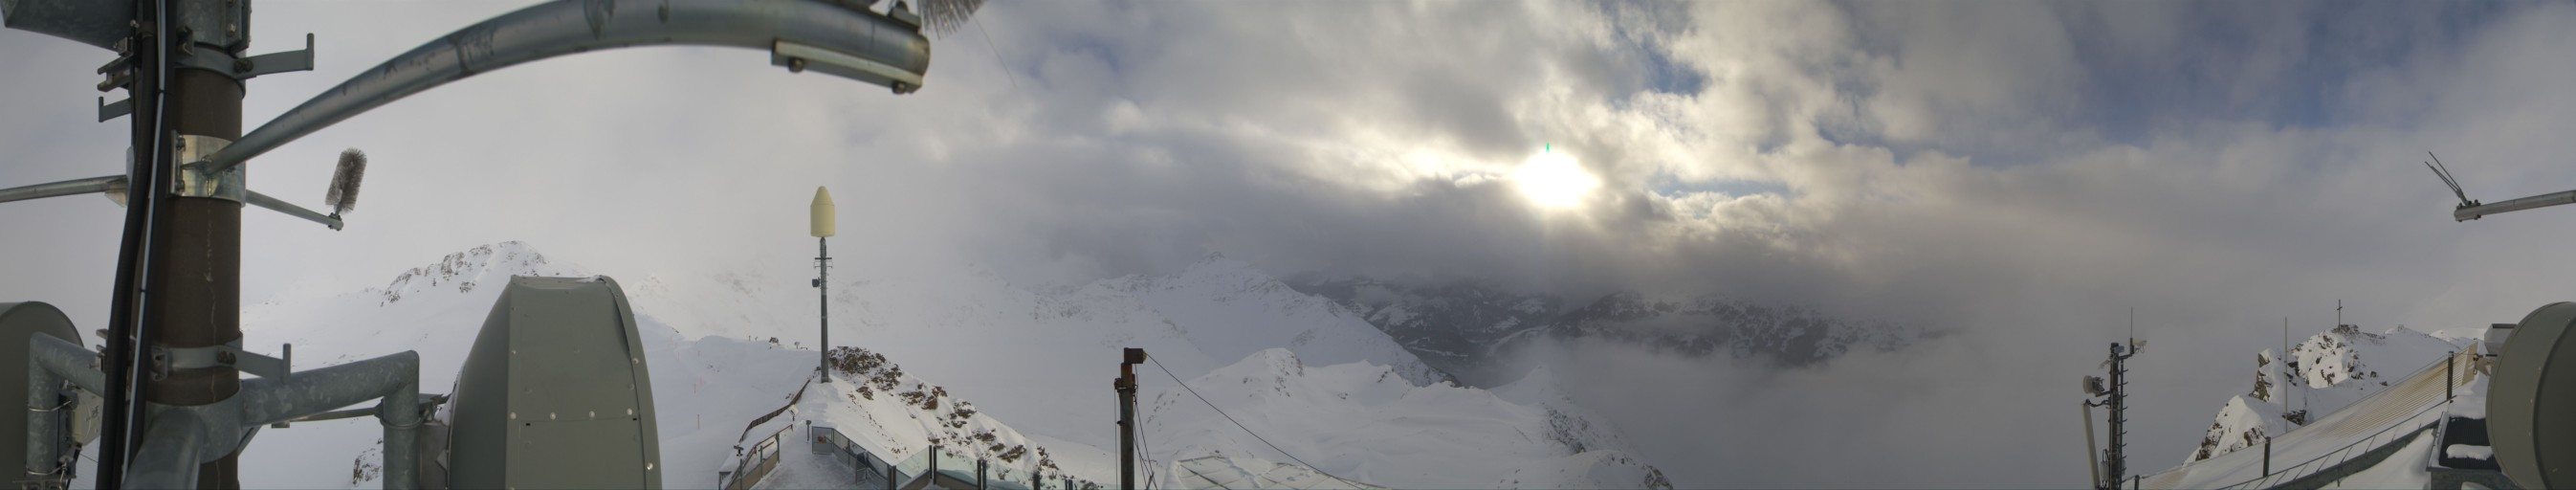 Webcam Lenzerheide Parpaner Rothorn